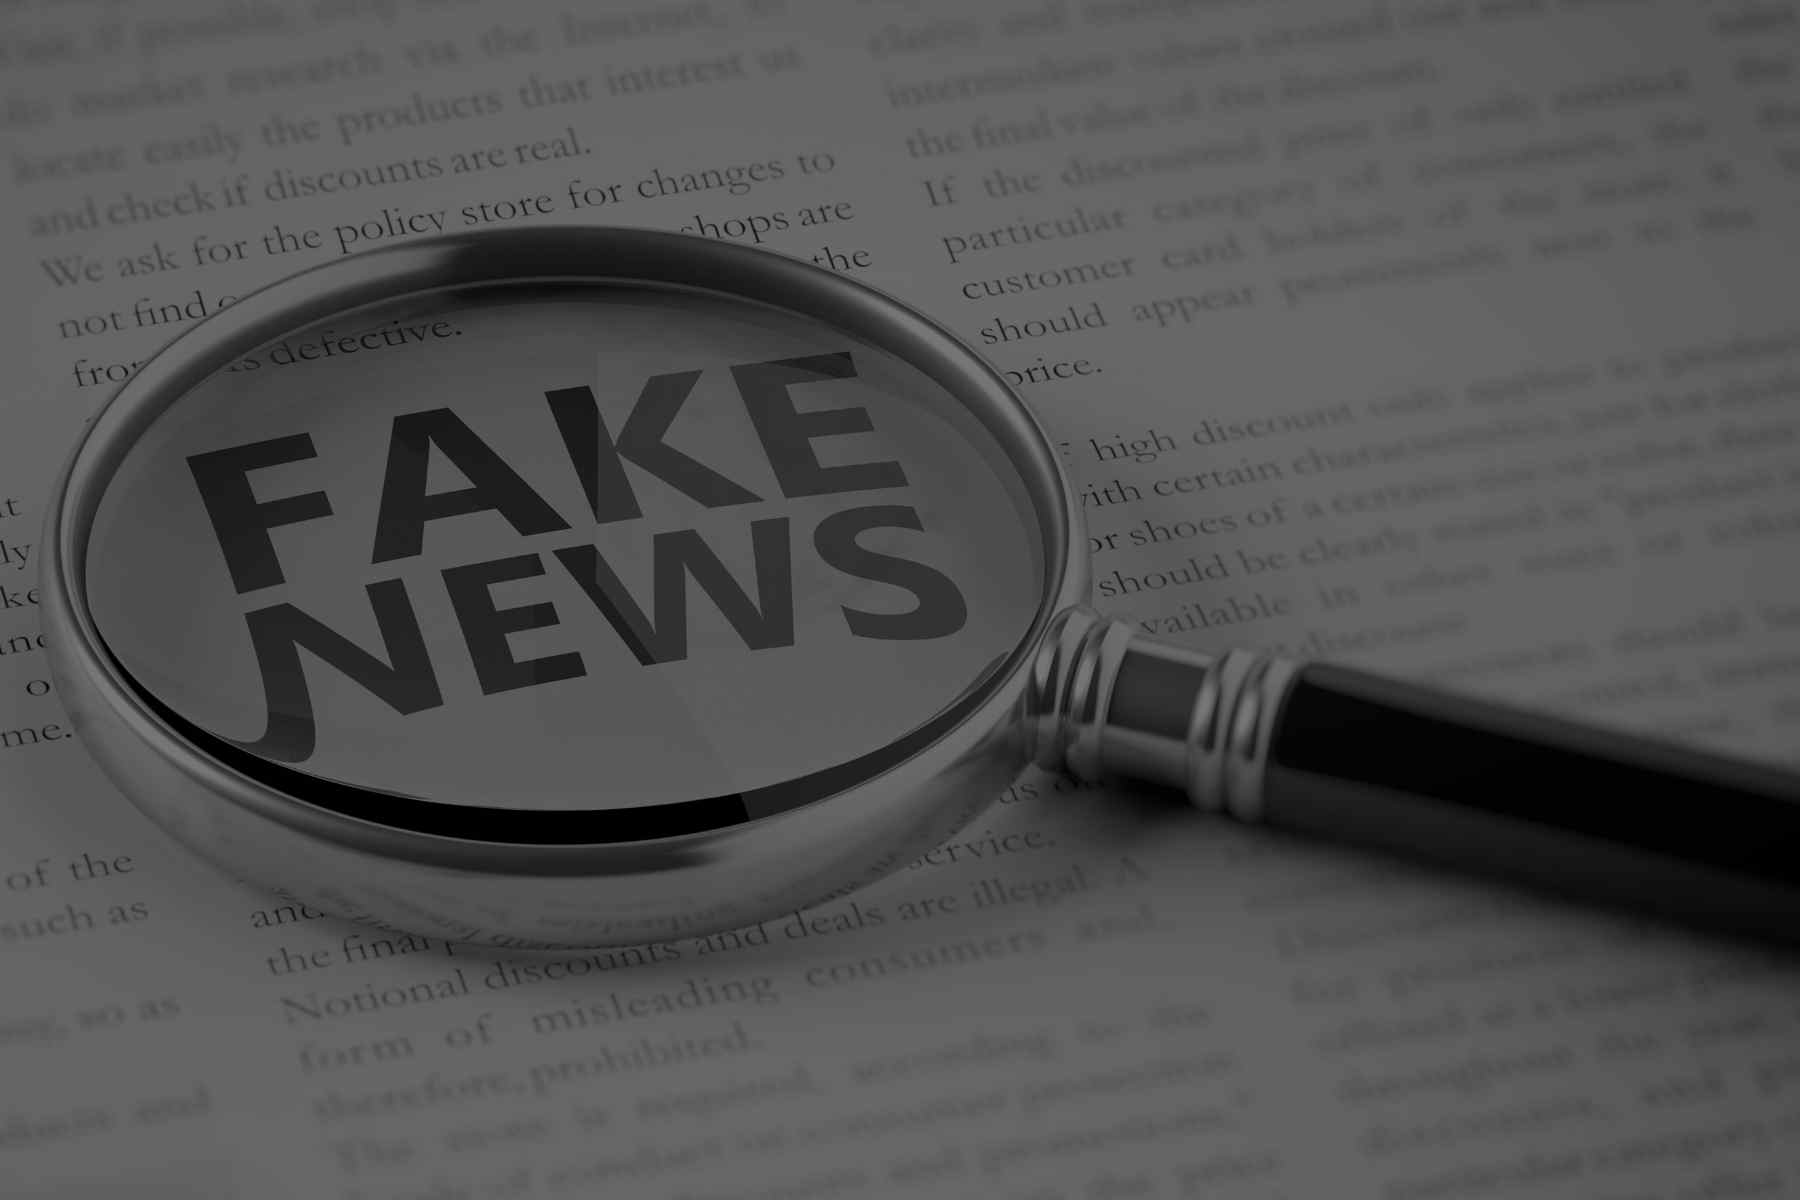 Disinformation i.e. FAKE NEWS: How the Weaponization of Social Media Has You Conned